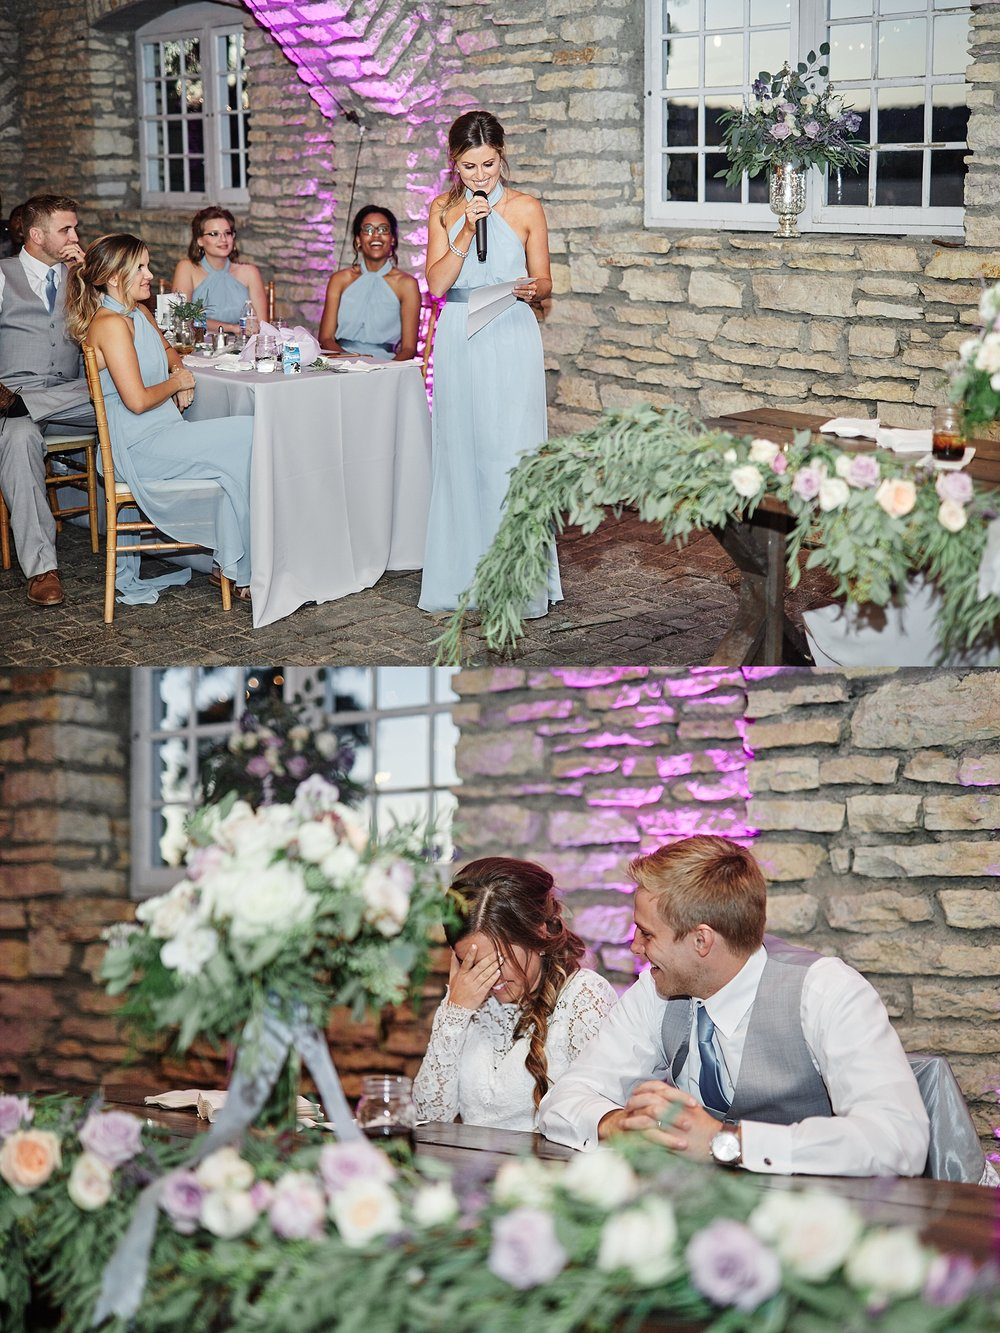 Maywood-Stone-Barn-Wedding-Rochester-Minnesota-Perry-James-Photo_0685.jpg